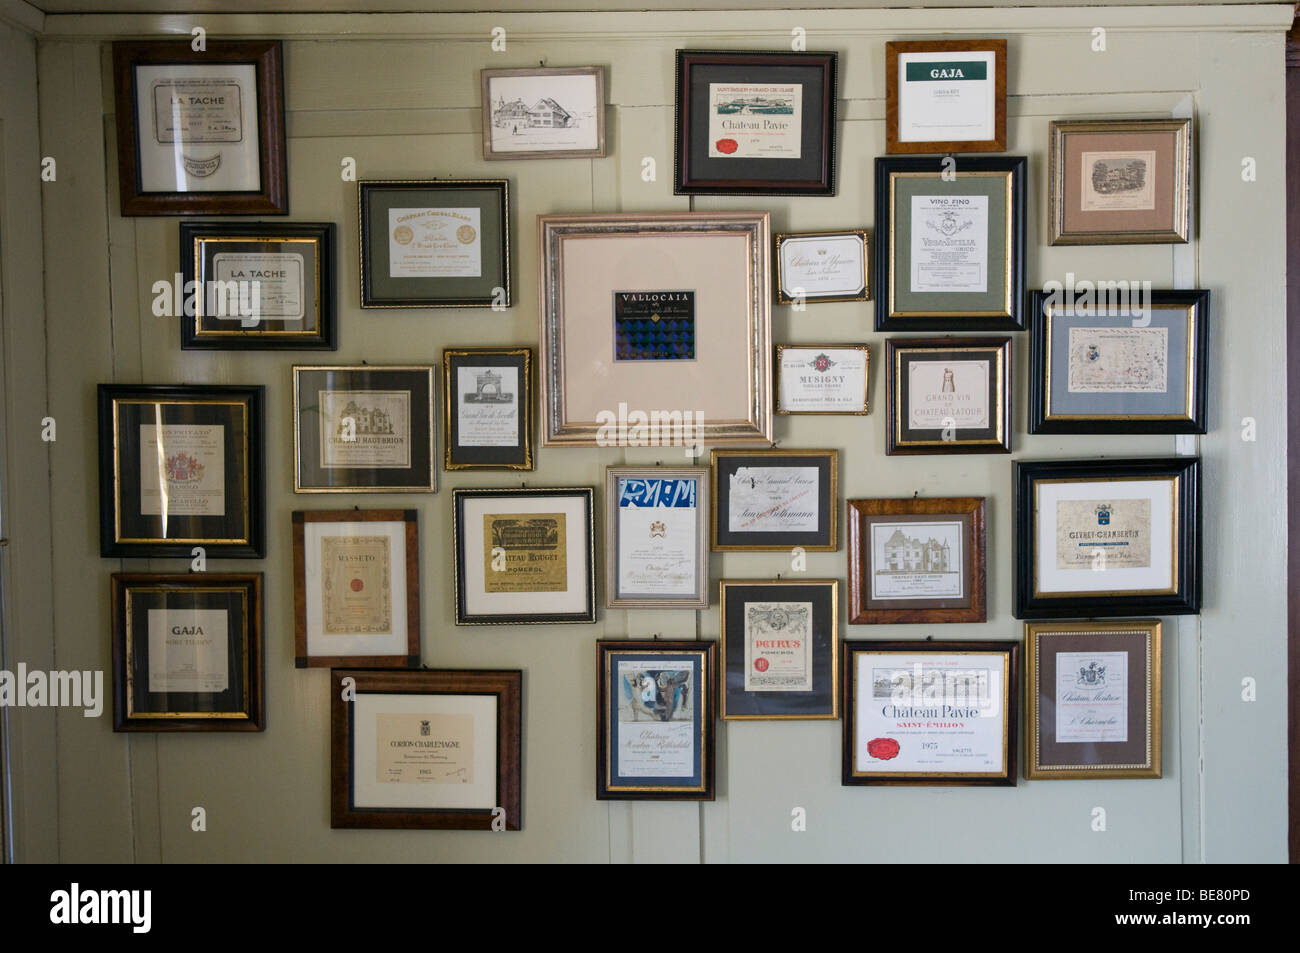 decoration photo frames with wine labels hung on the wall restaurant taverne zum schaefli owner and head chef wolfgang kuchle - Wine Picture Frames